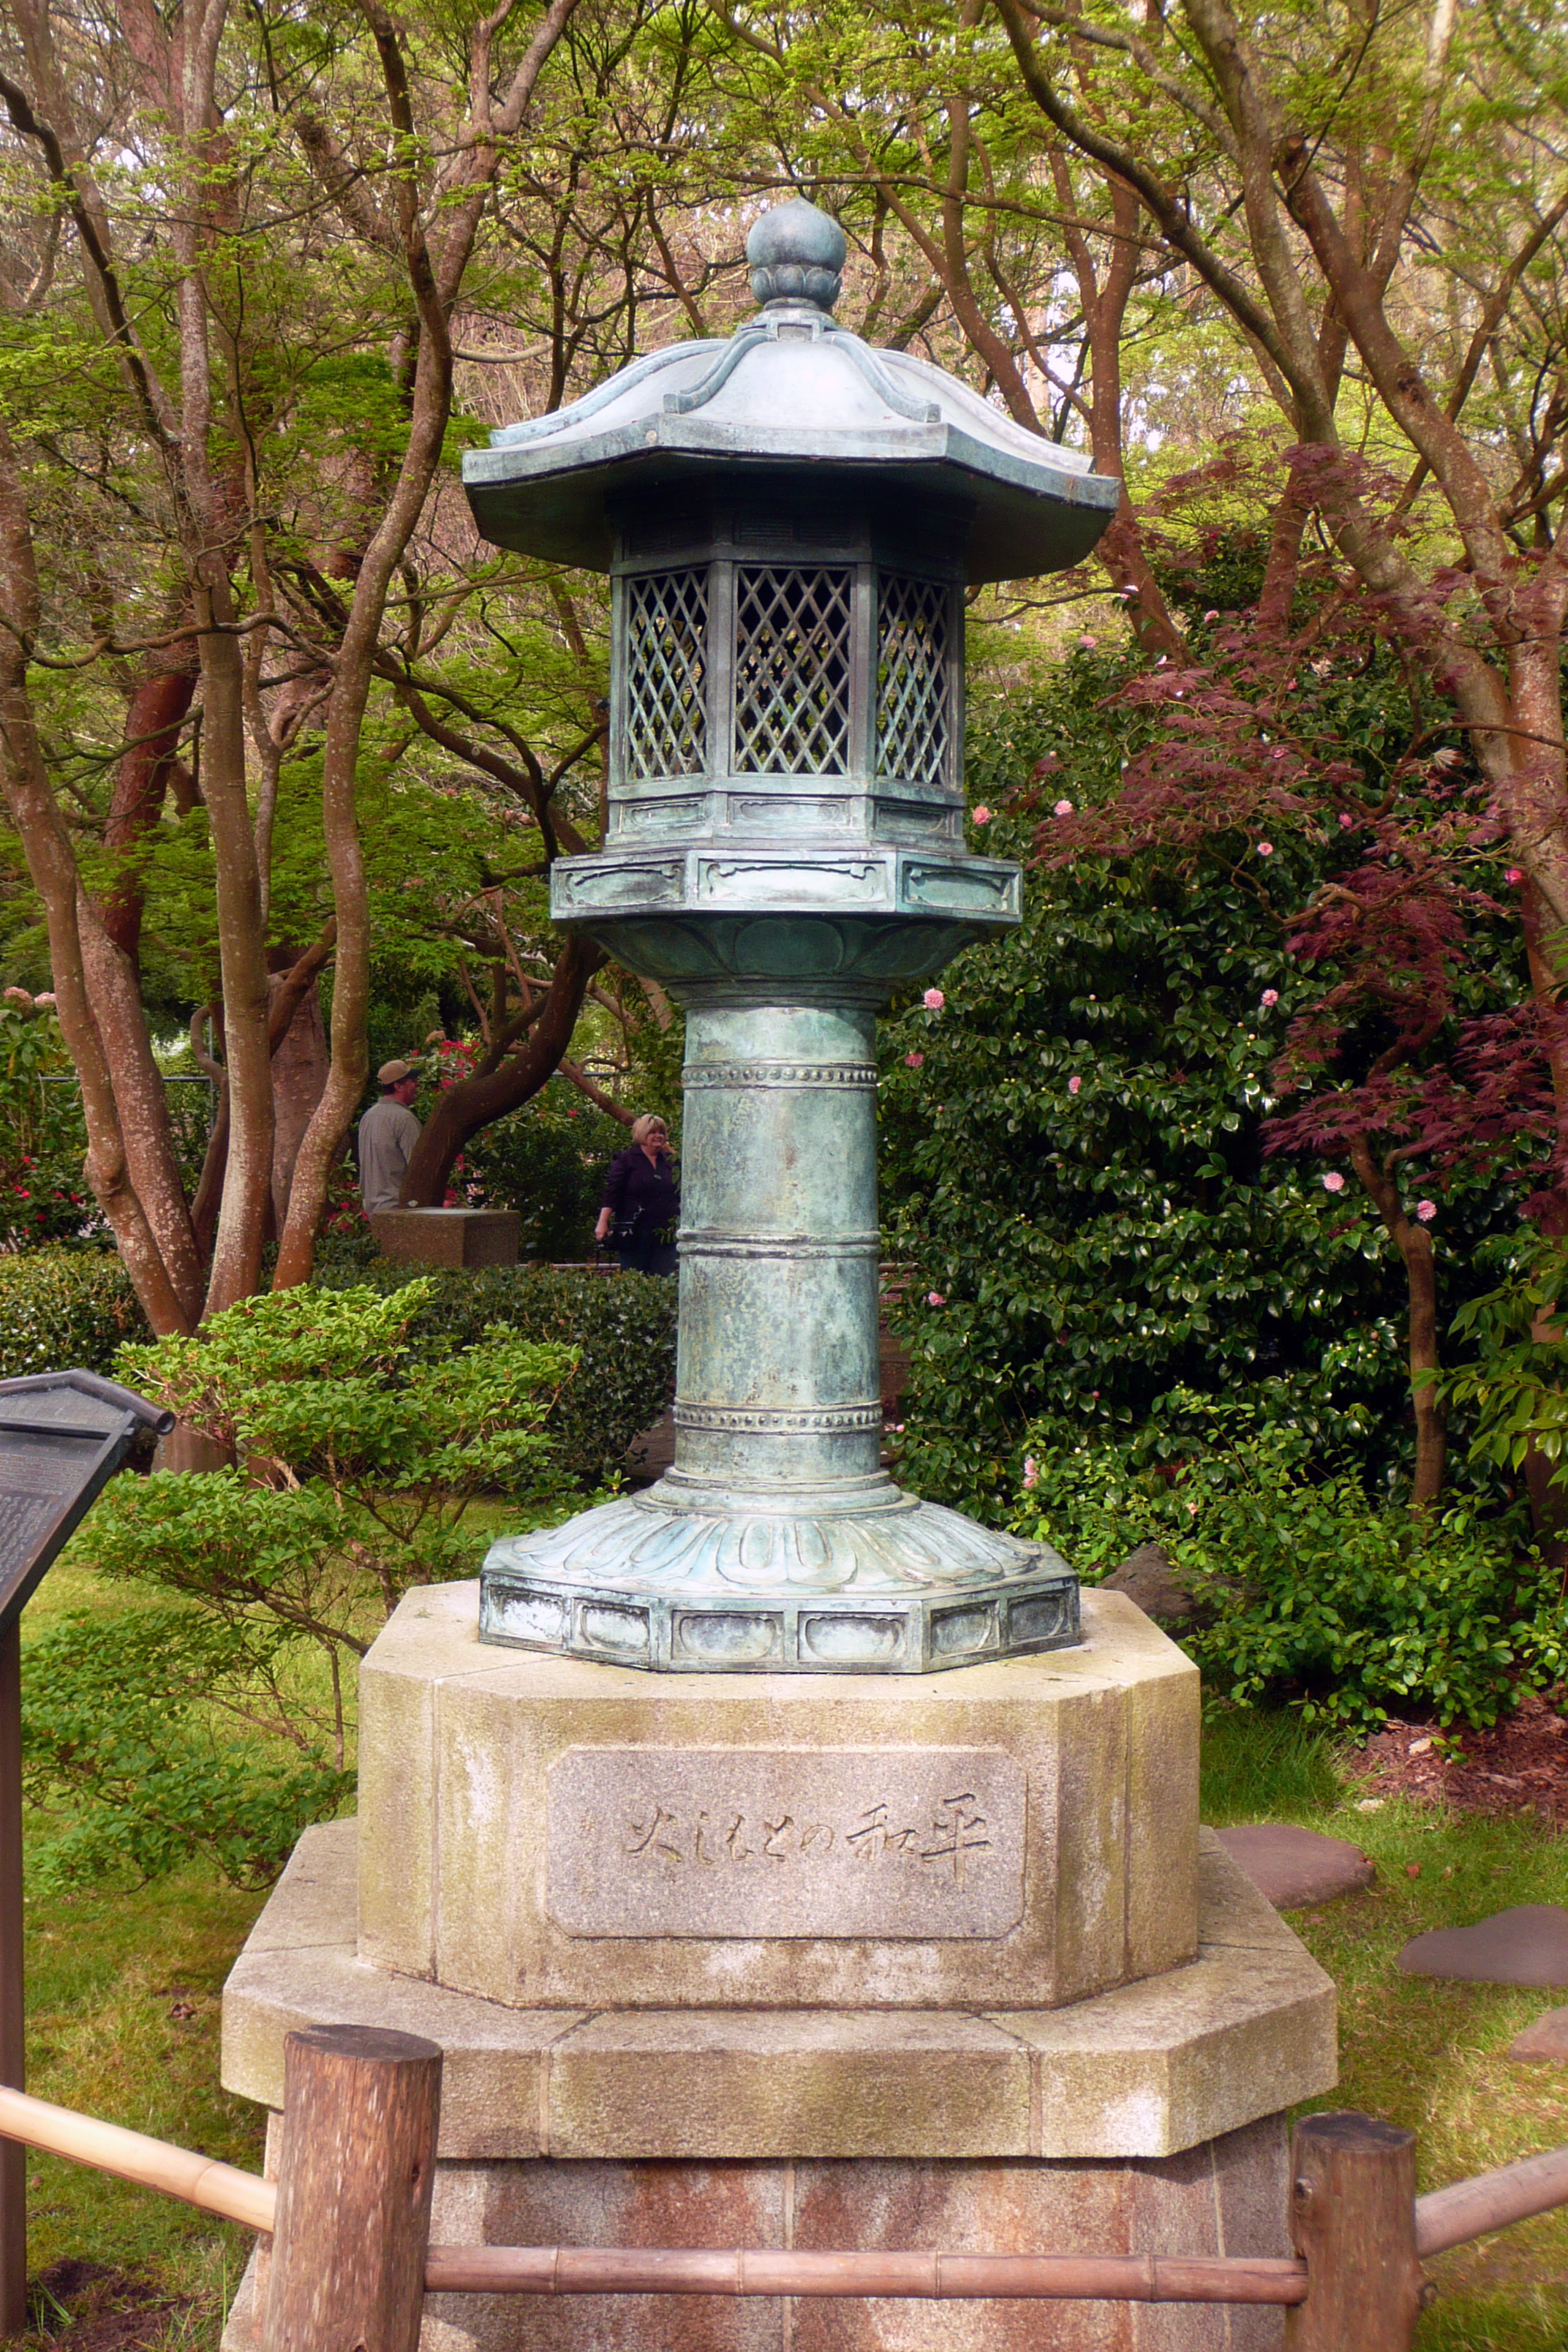 FileLantern in the Japanese Garden 5jpg Wikimedia Commons